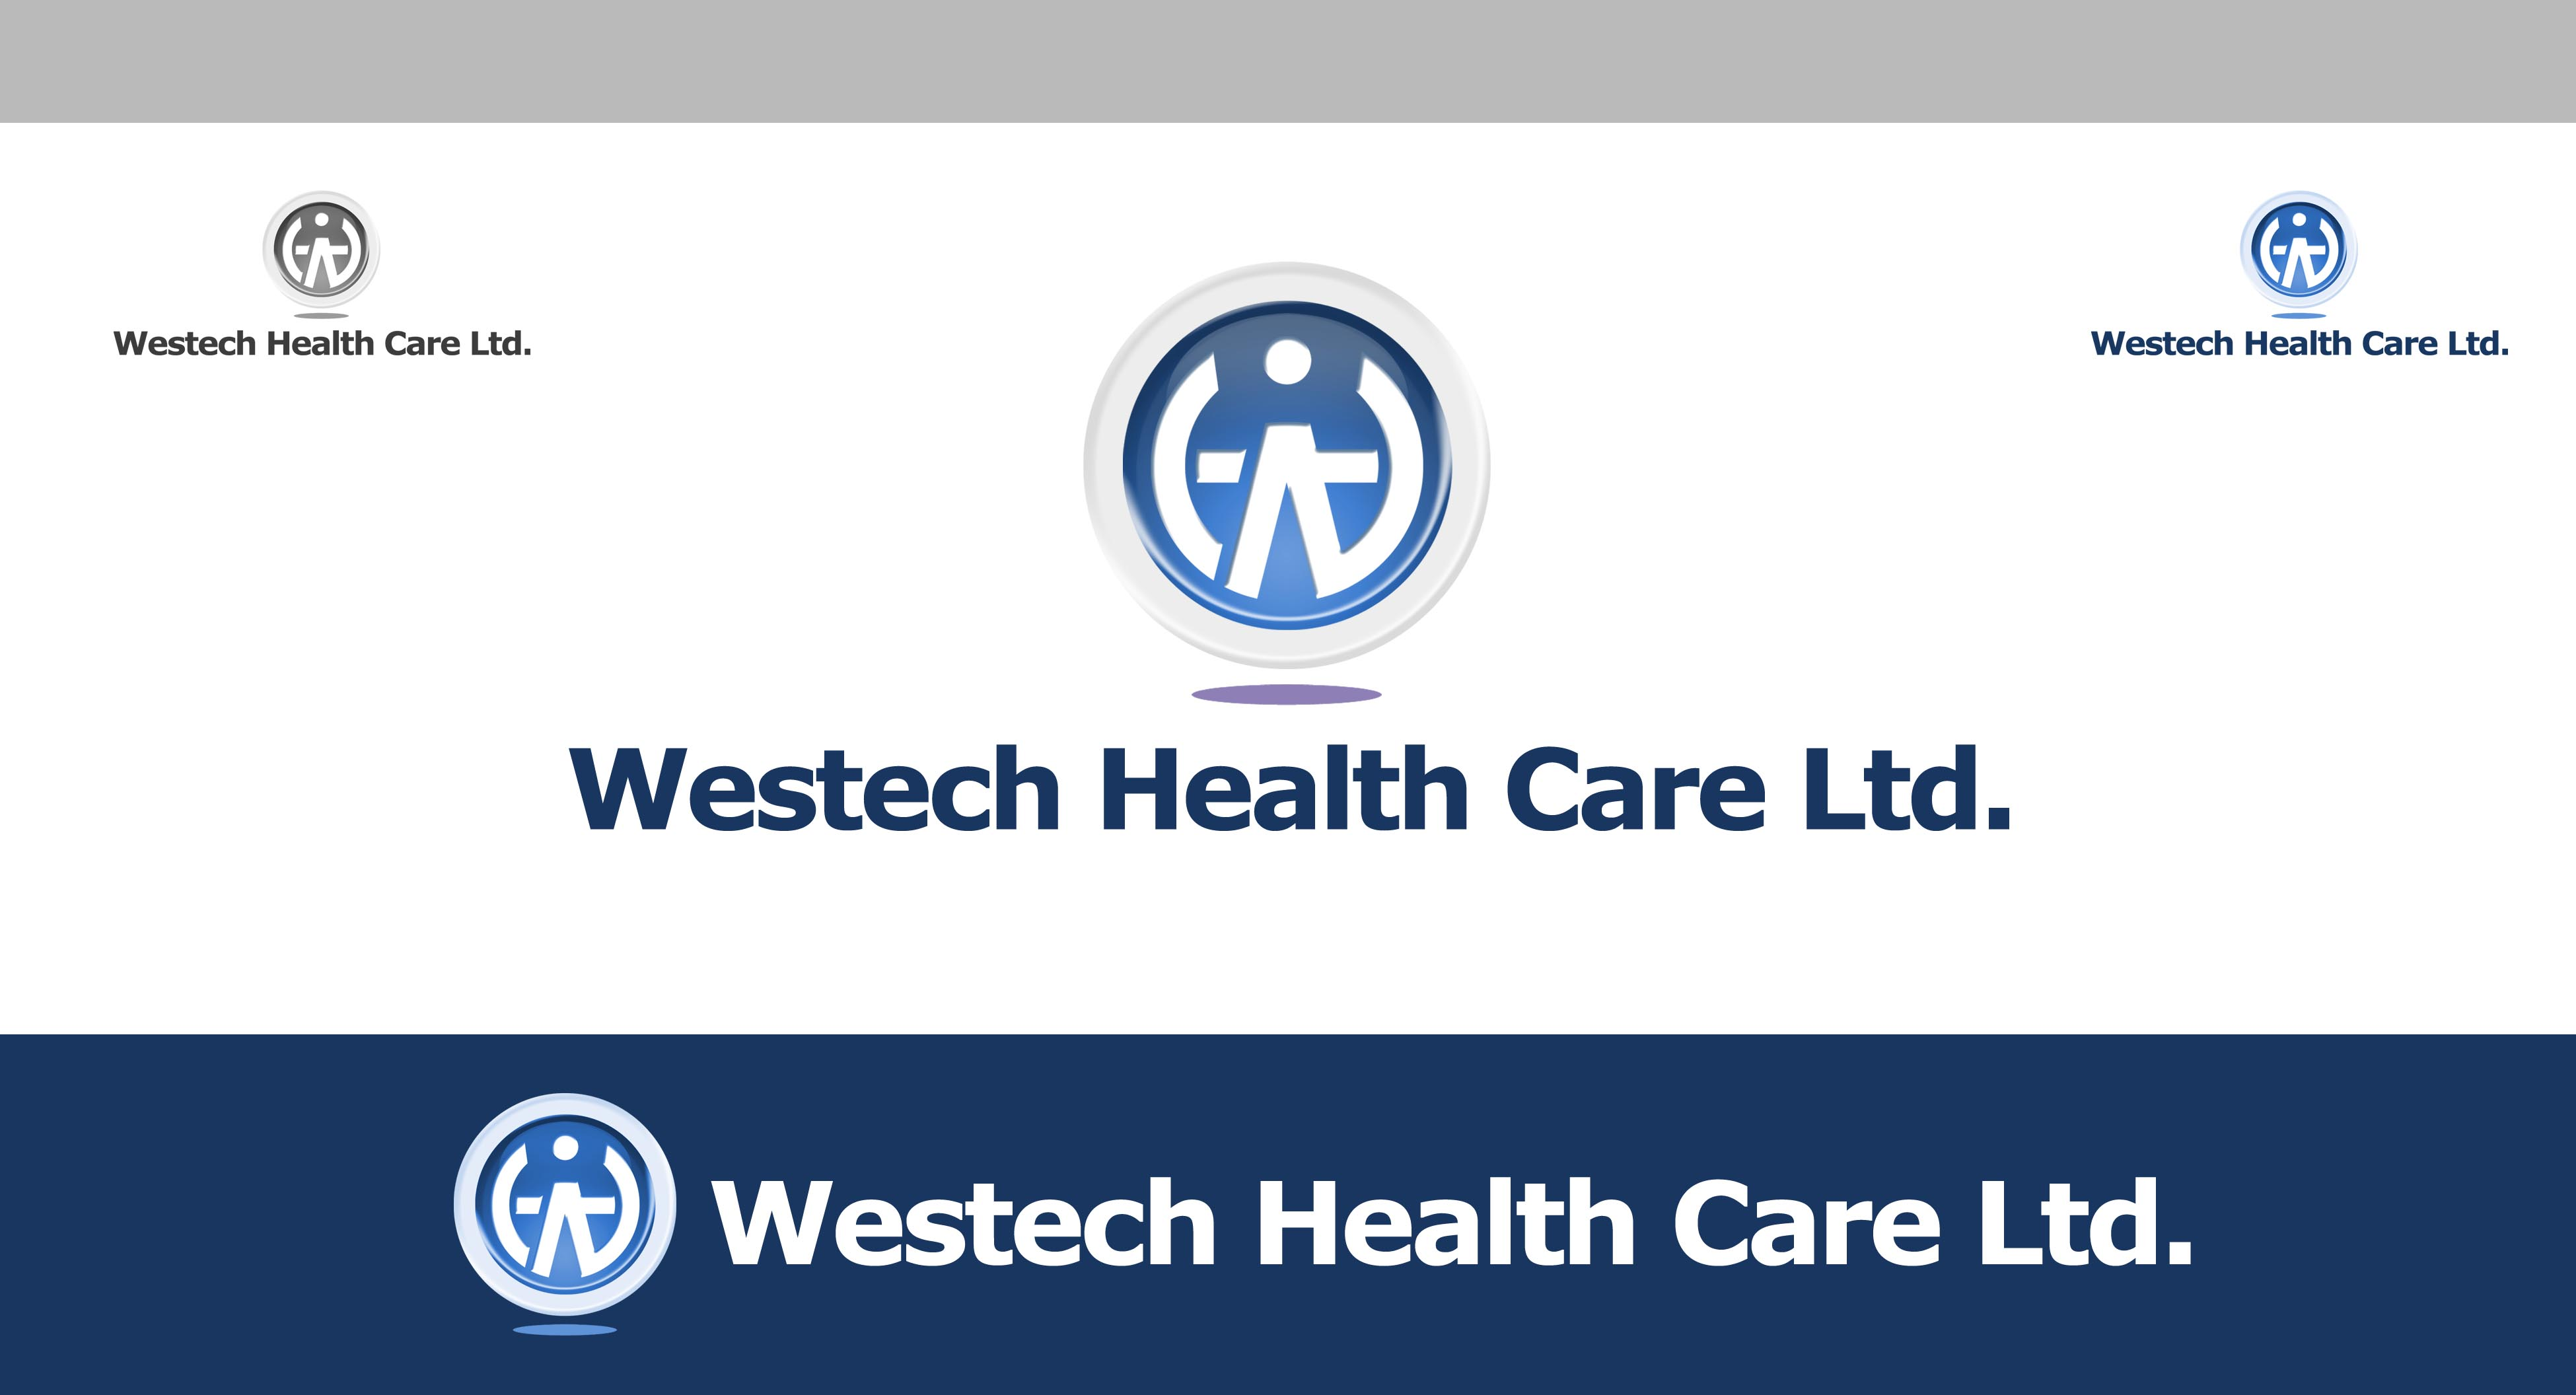 Logo Design by Cesar III Sotto - Entry No. 99 in the Logo Design Contest Creative Logo Design for Westech Health Care Ltd..